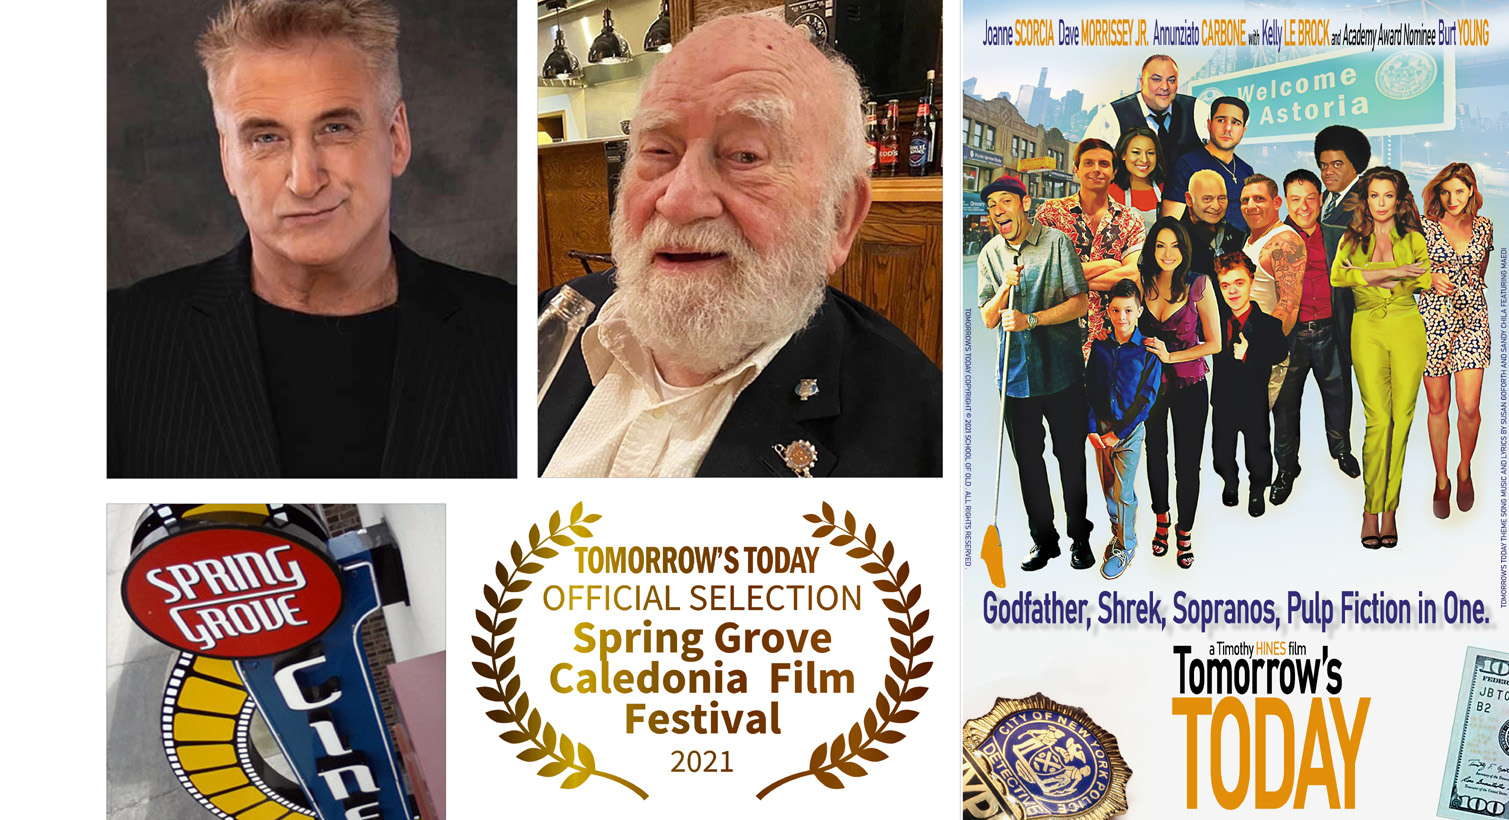 """""""Tomorrows' Today"""" to be Screened at Spring Grove-Caledonia Film Festival with hosts Daniel Baldwin and Ed Asner July 23-25"""